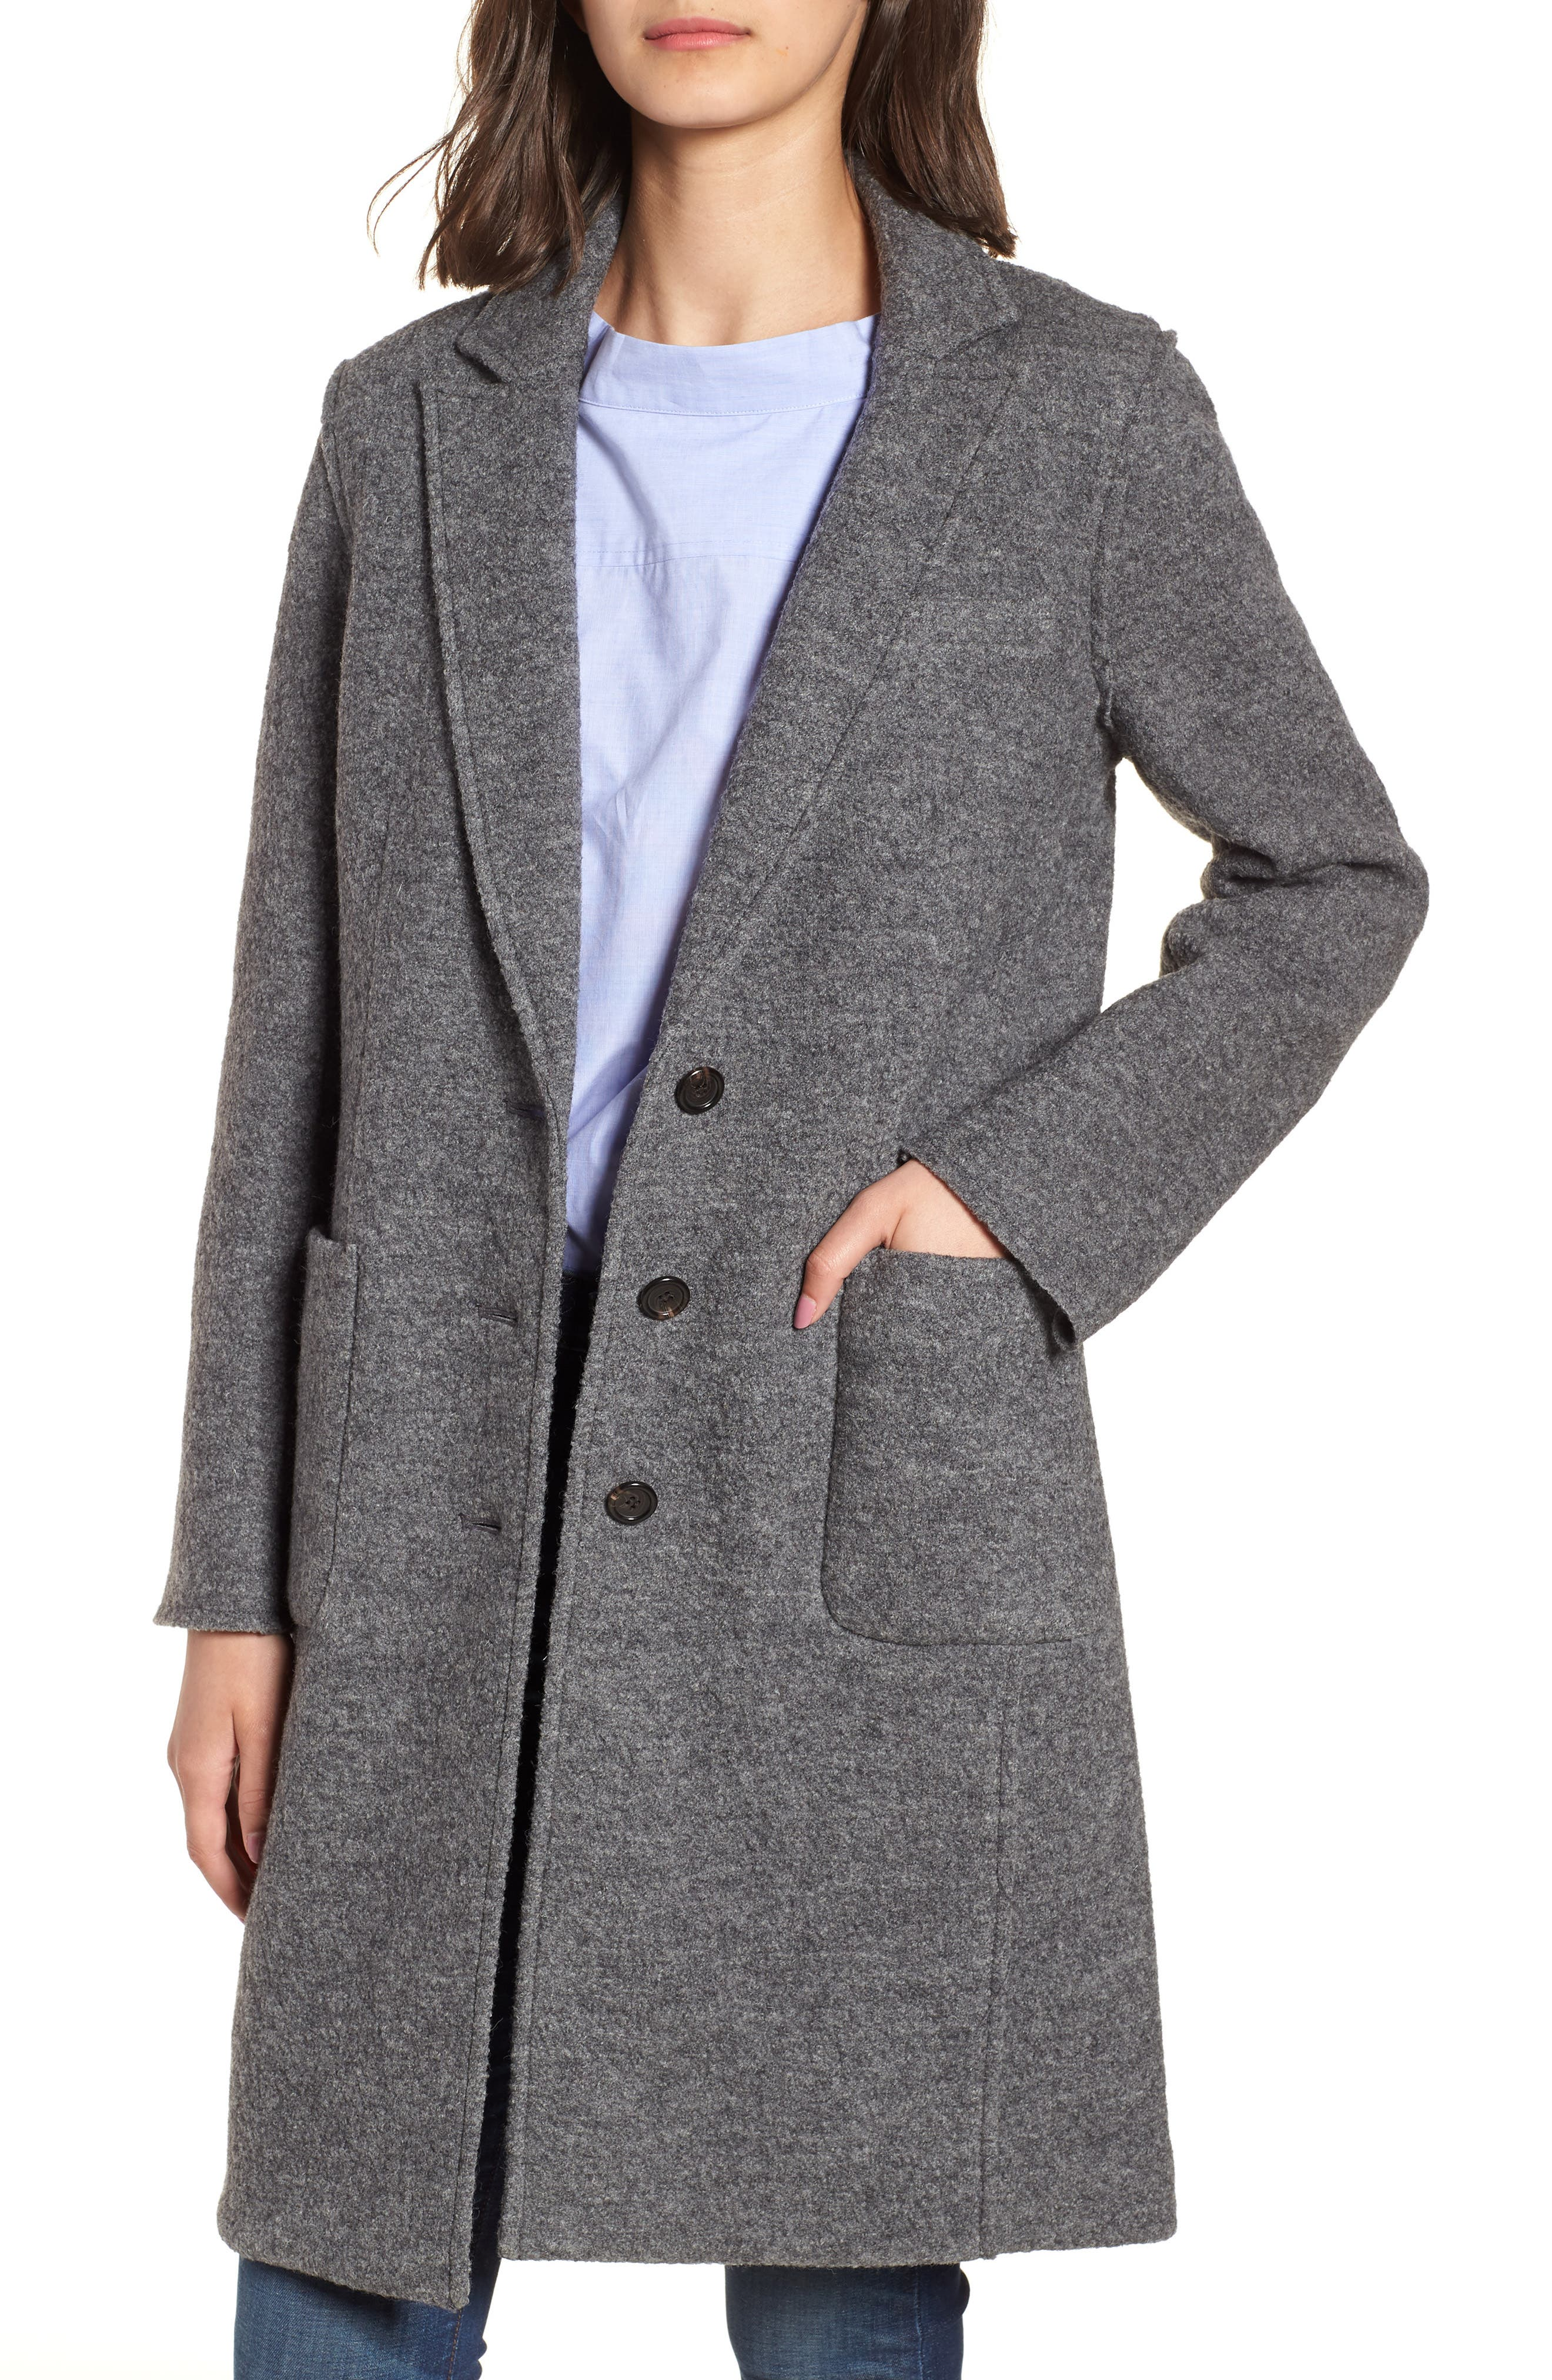 1920s Coats, Flapper Coats, 20s Jackets Womens J.crew Olga Boiled Wool Topcoat Size 8 - Grey $119.90 AT vintagedancer.com